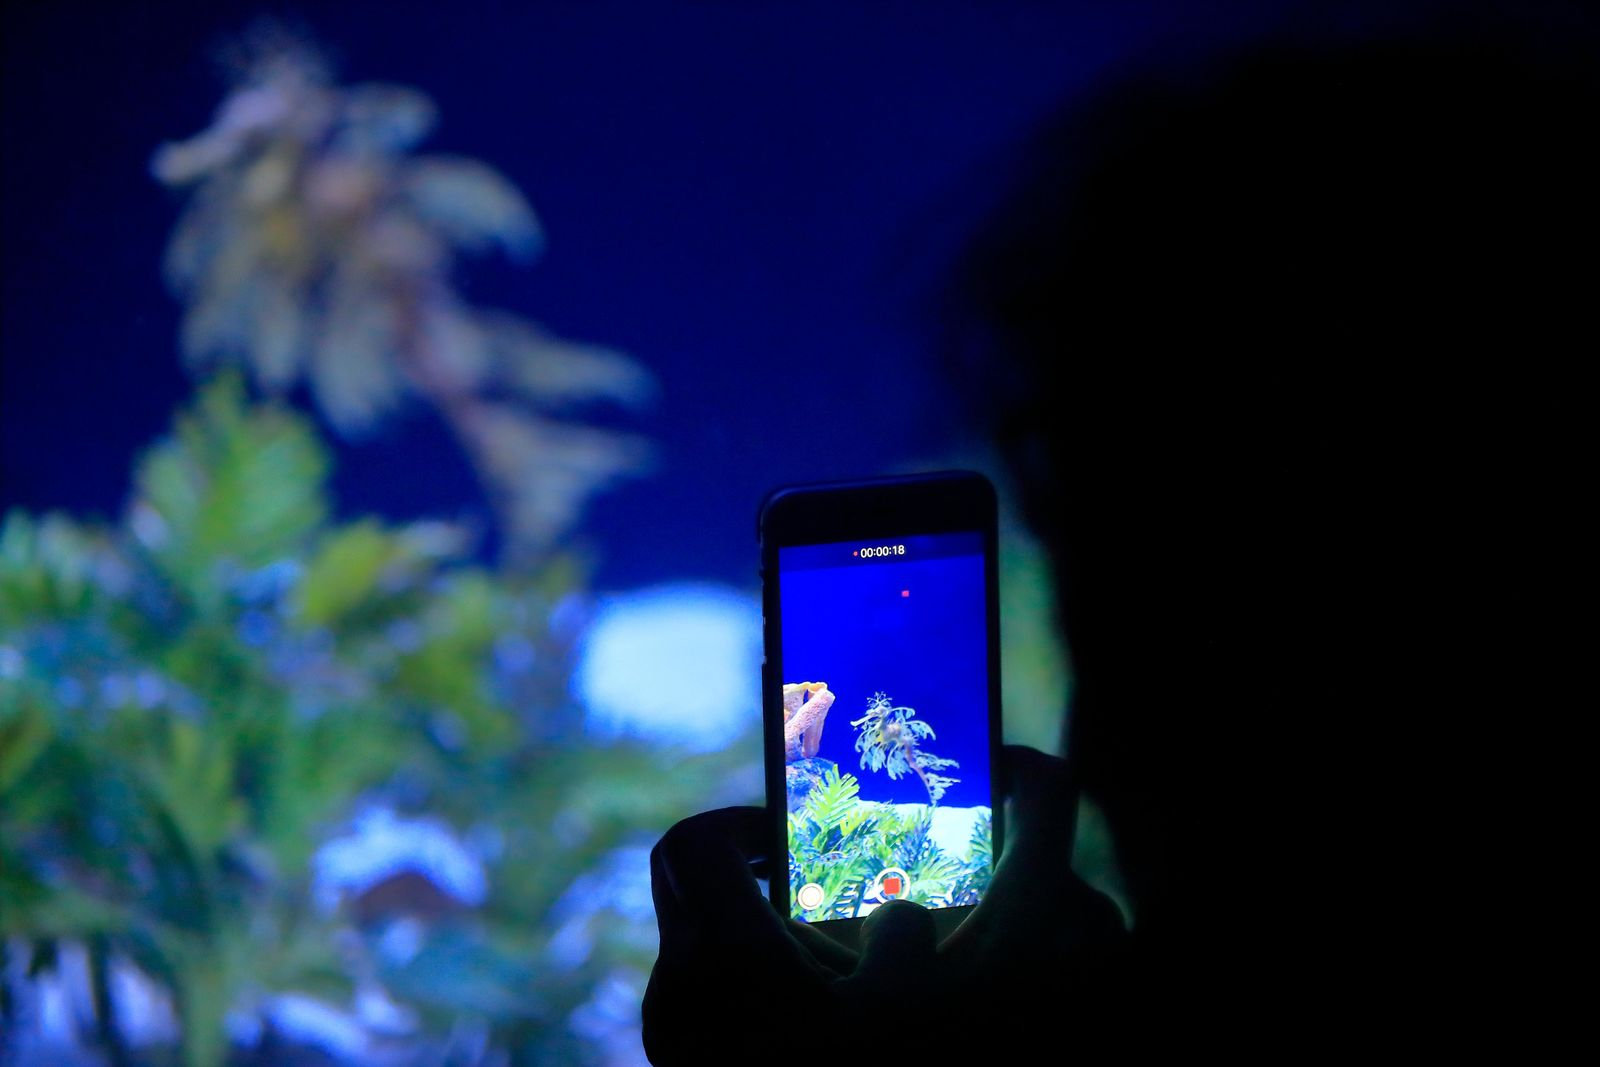 In this Friday, May 17, 2019 photo, a woman records an image of a sea dragon at the Birch Aquarium at the Scripps Institution of Oceanography at the University of California San Diego in San Diego. (AP Photo/Gregory Bull)